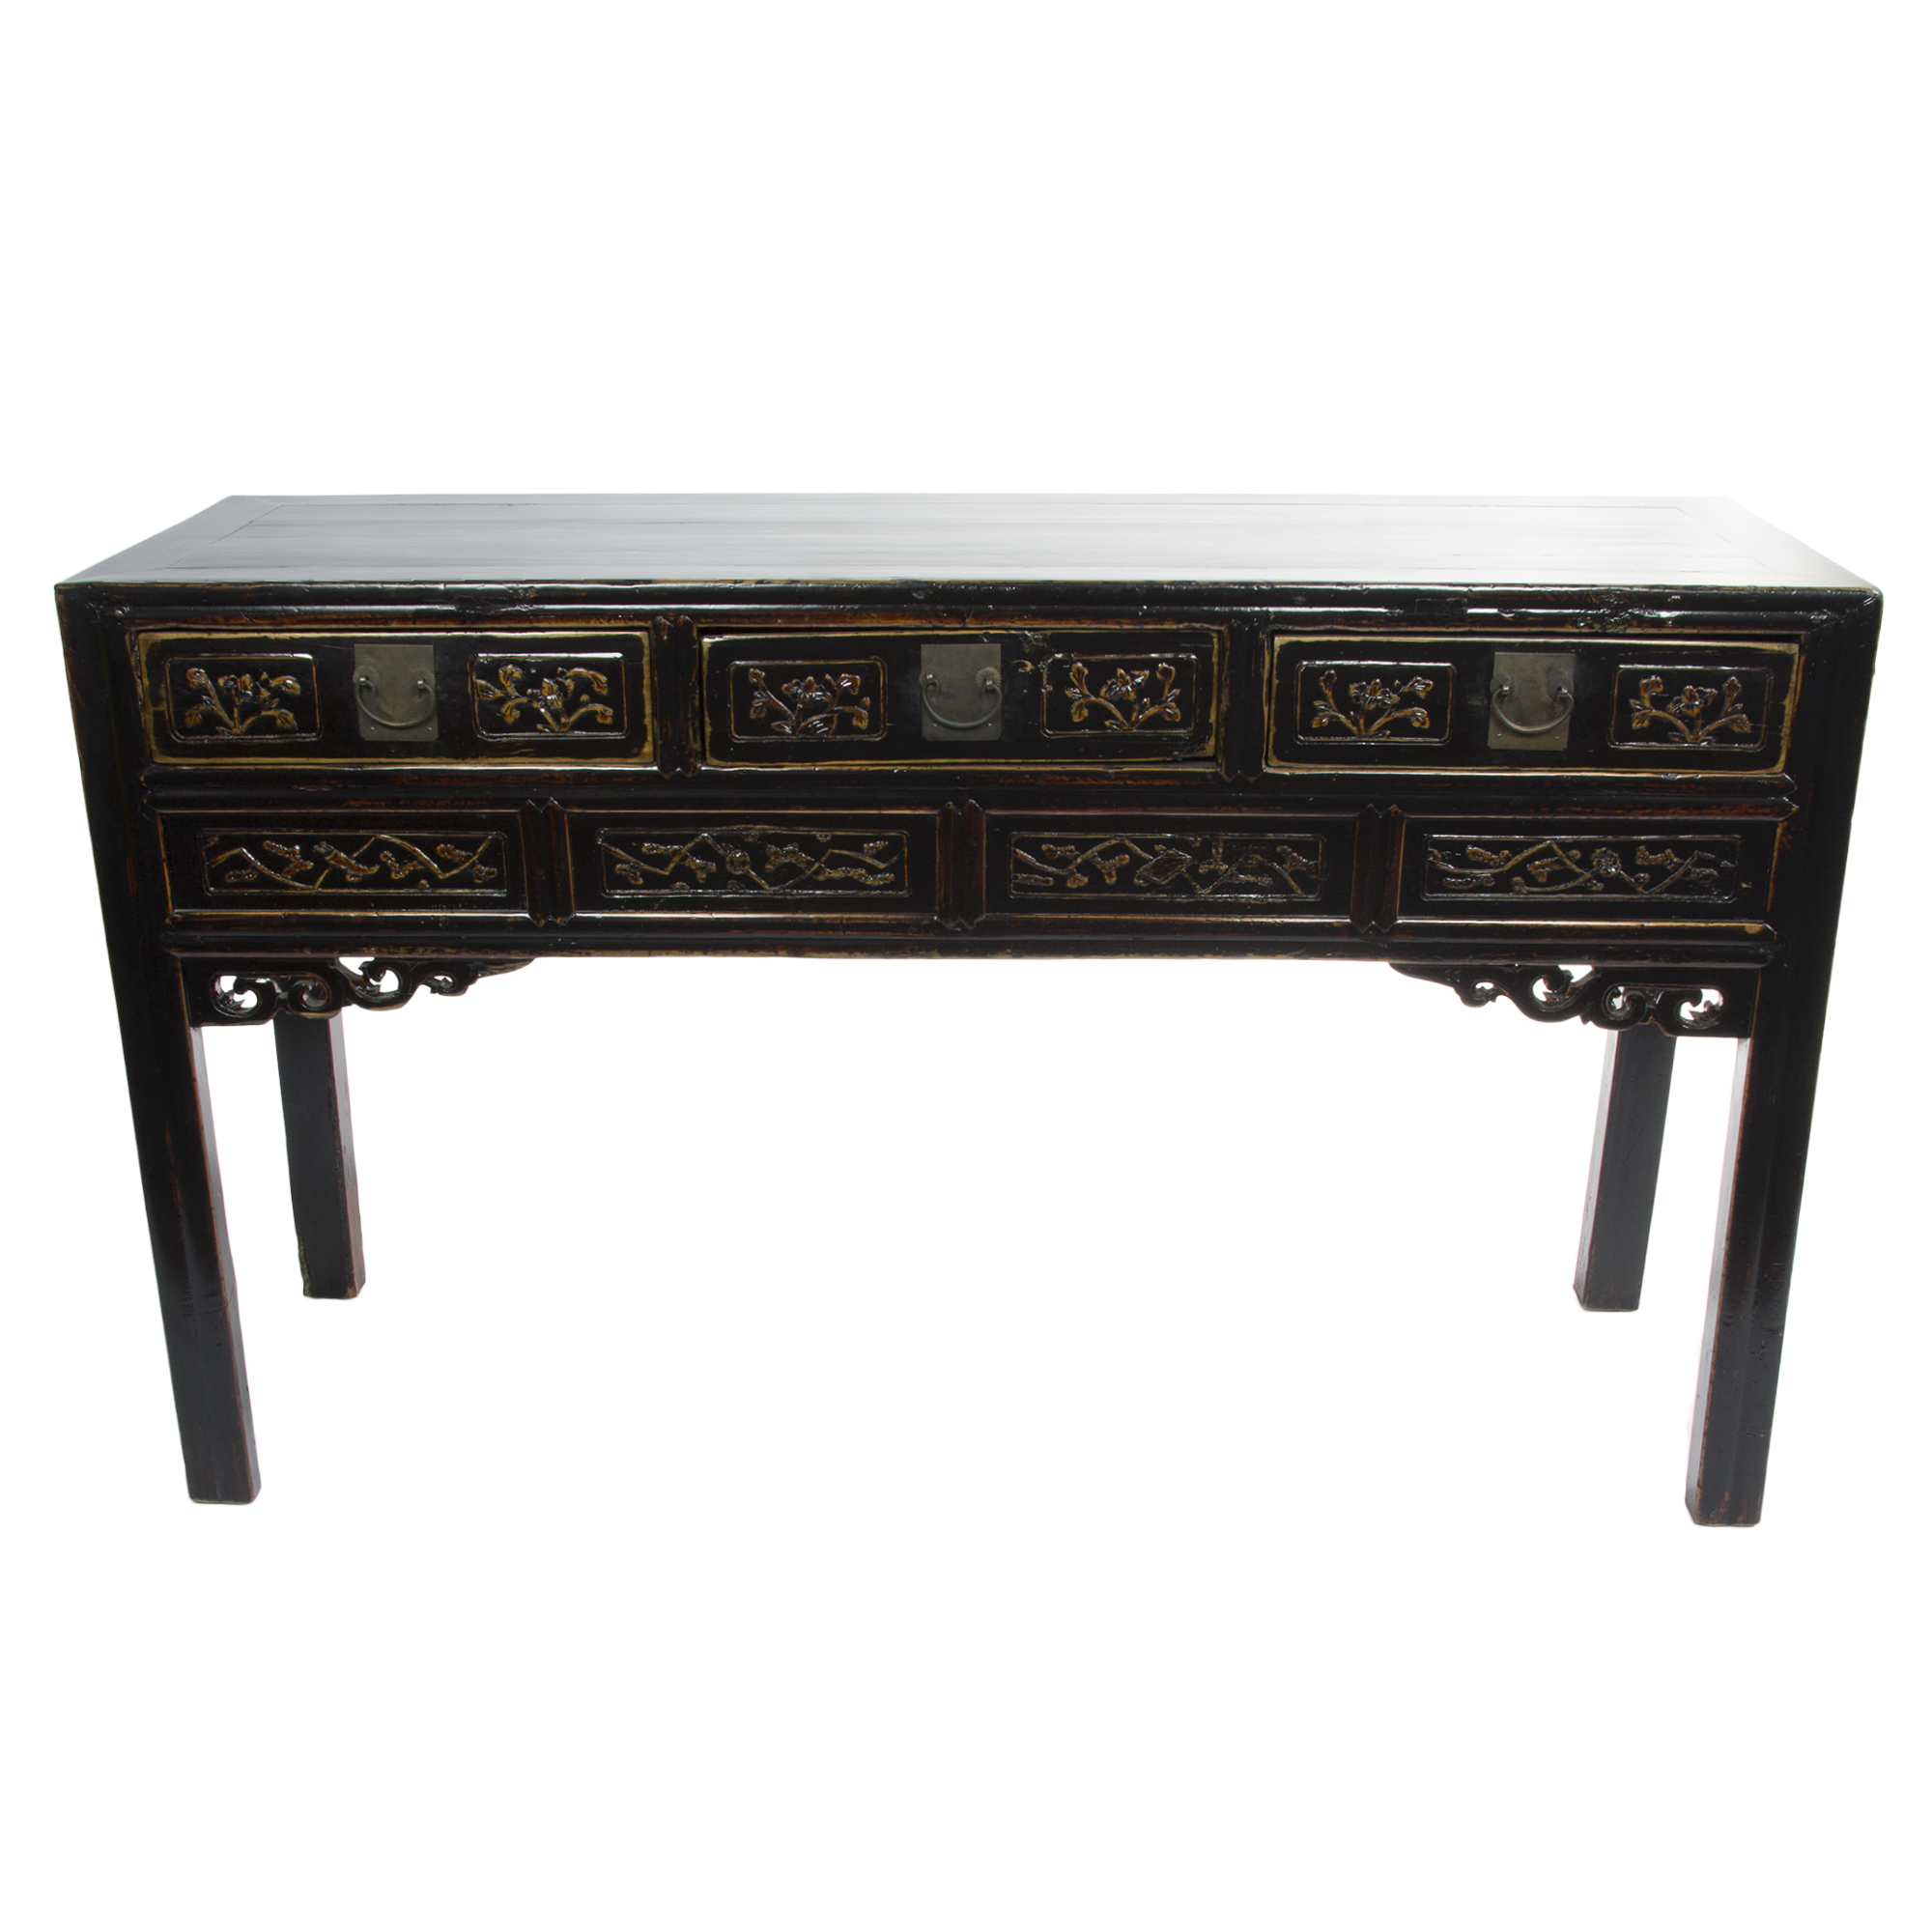 chinese writing desk Antique chinese writing desk three-part desk (top unit and two pedestals) in a dark brown finish with domed wooden pulls nine drawers overall for generous storage.